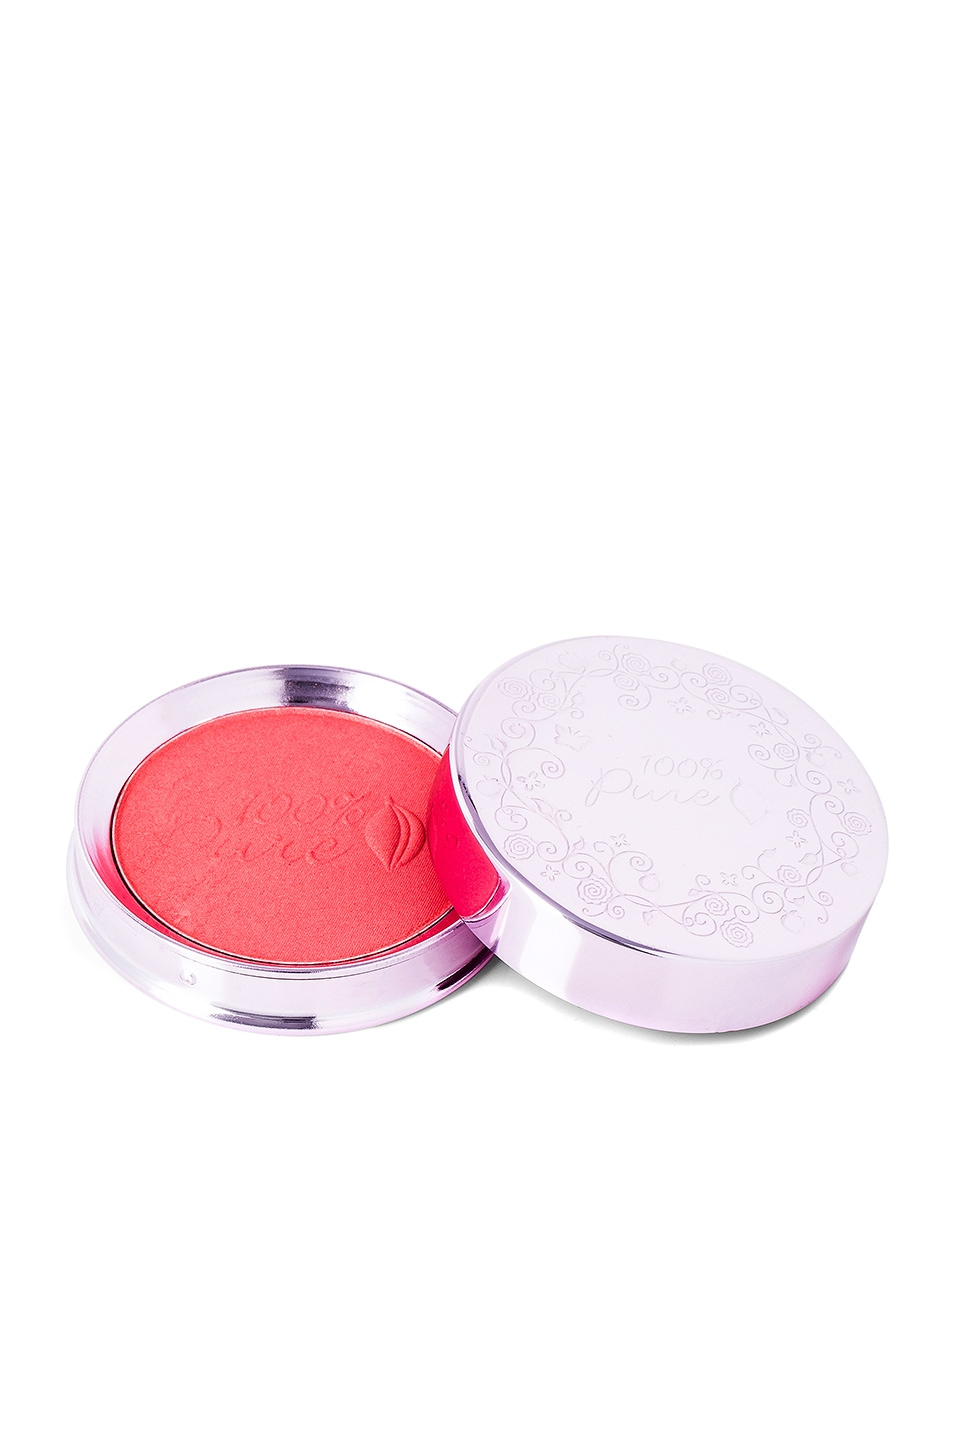 100% Pure Powder Blush in Mimosa